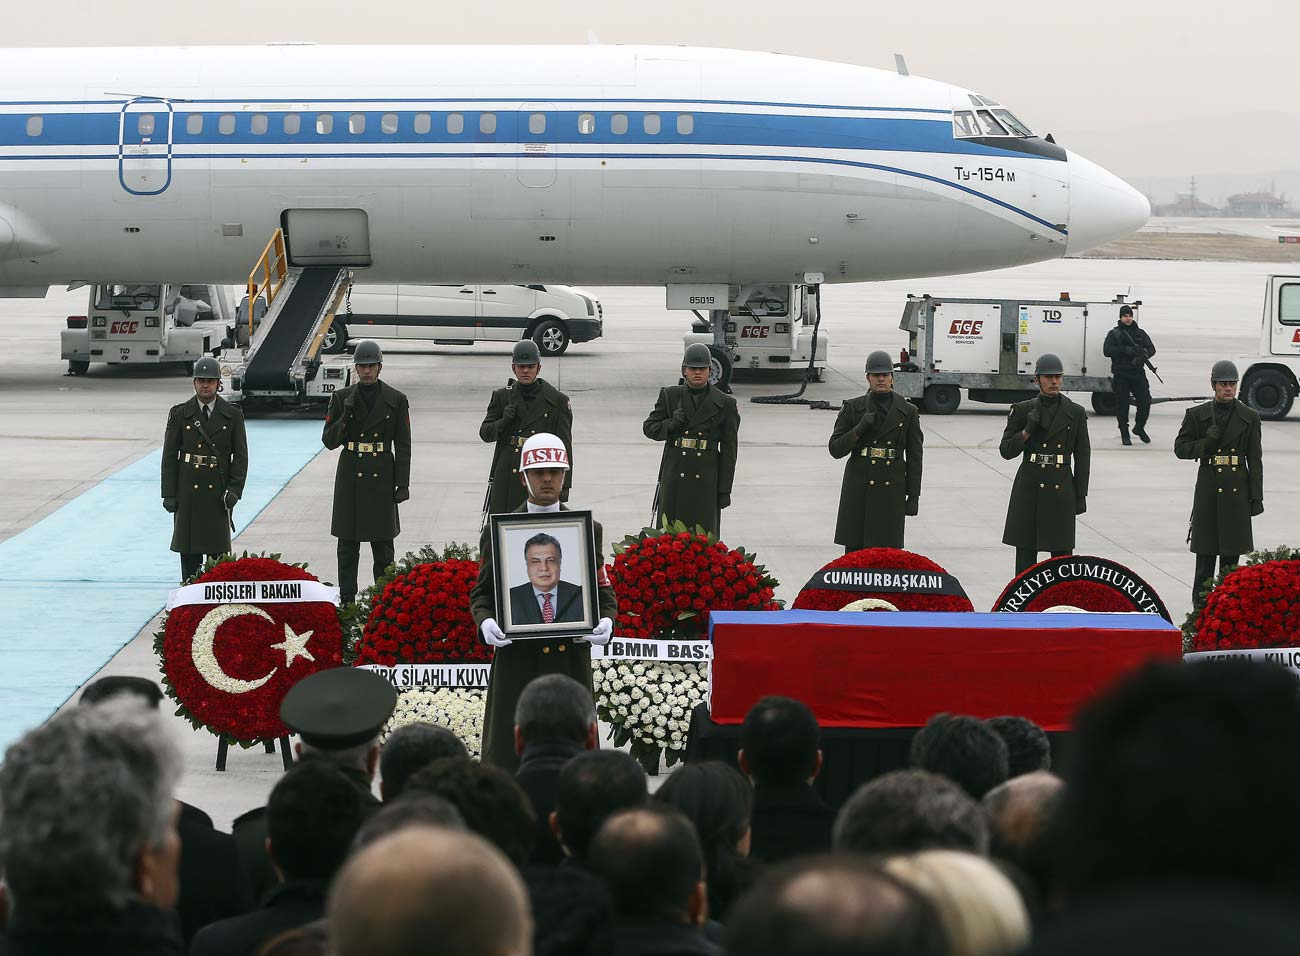 Farewell ceremony in honor of Russian Ambassador Andrei Karlov at Ankara airport, Turkey.